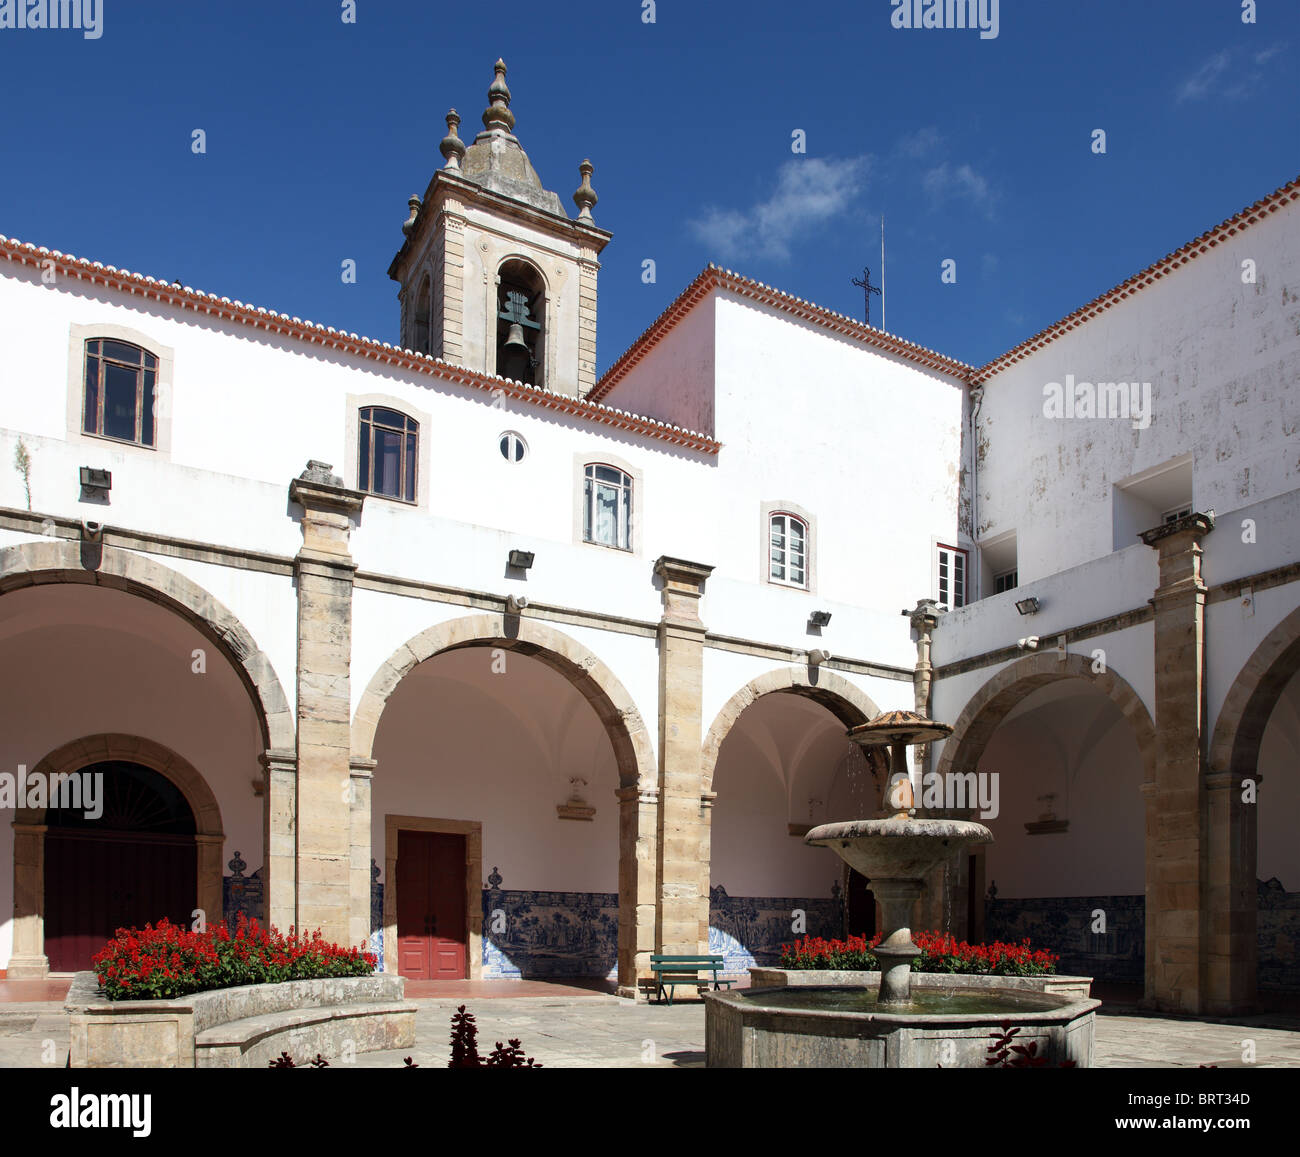 Torres Vedras Municipal Museum courtyard, Portugal - Stock Image